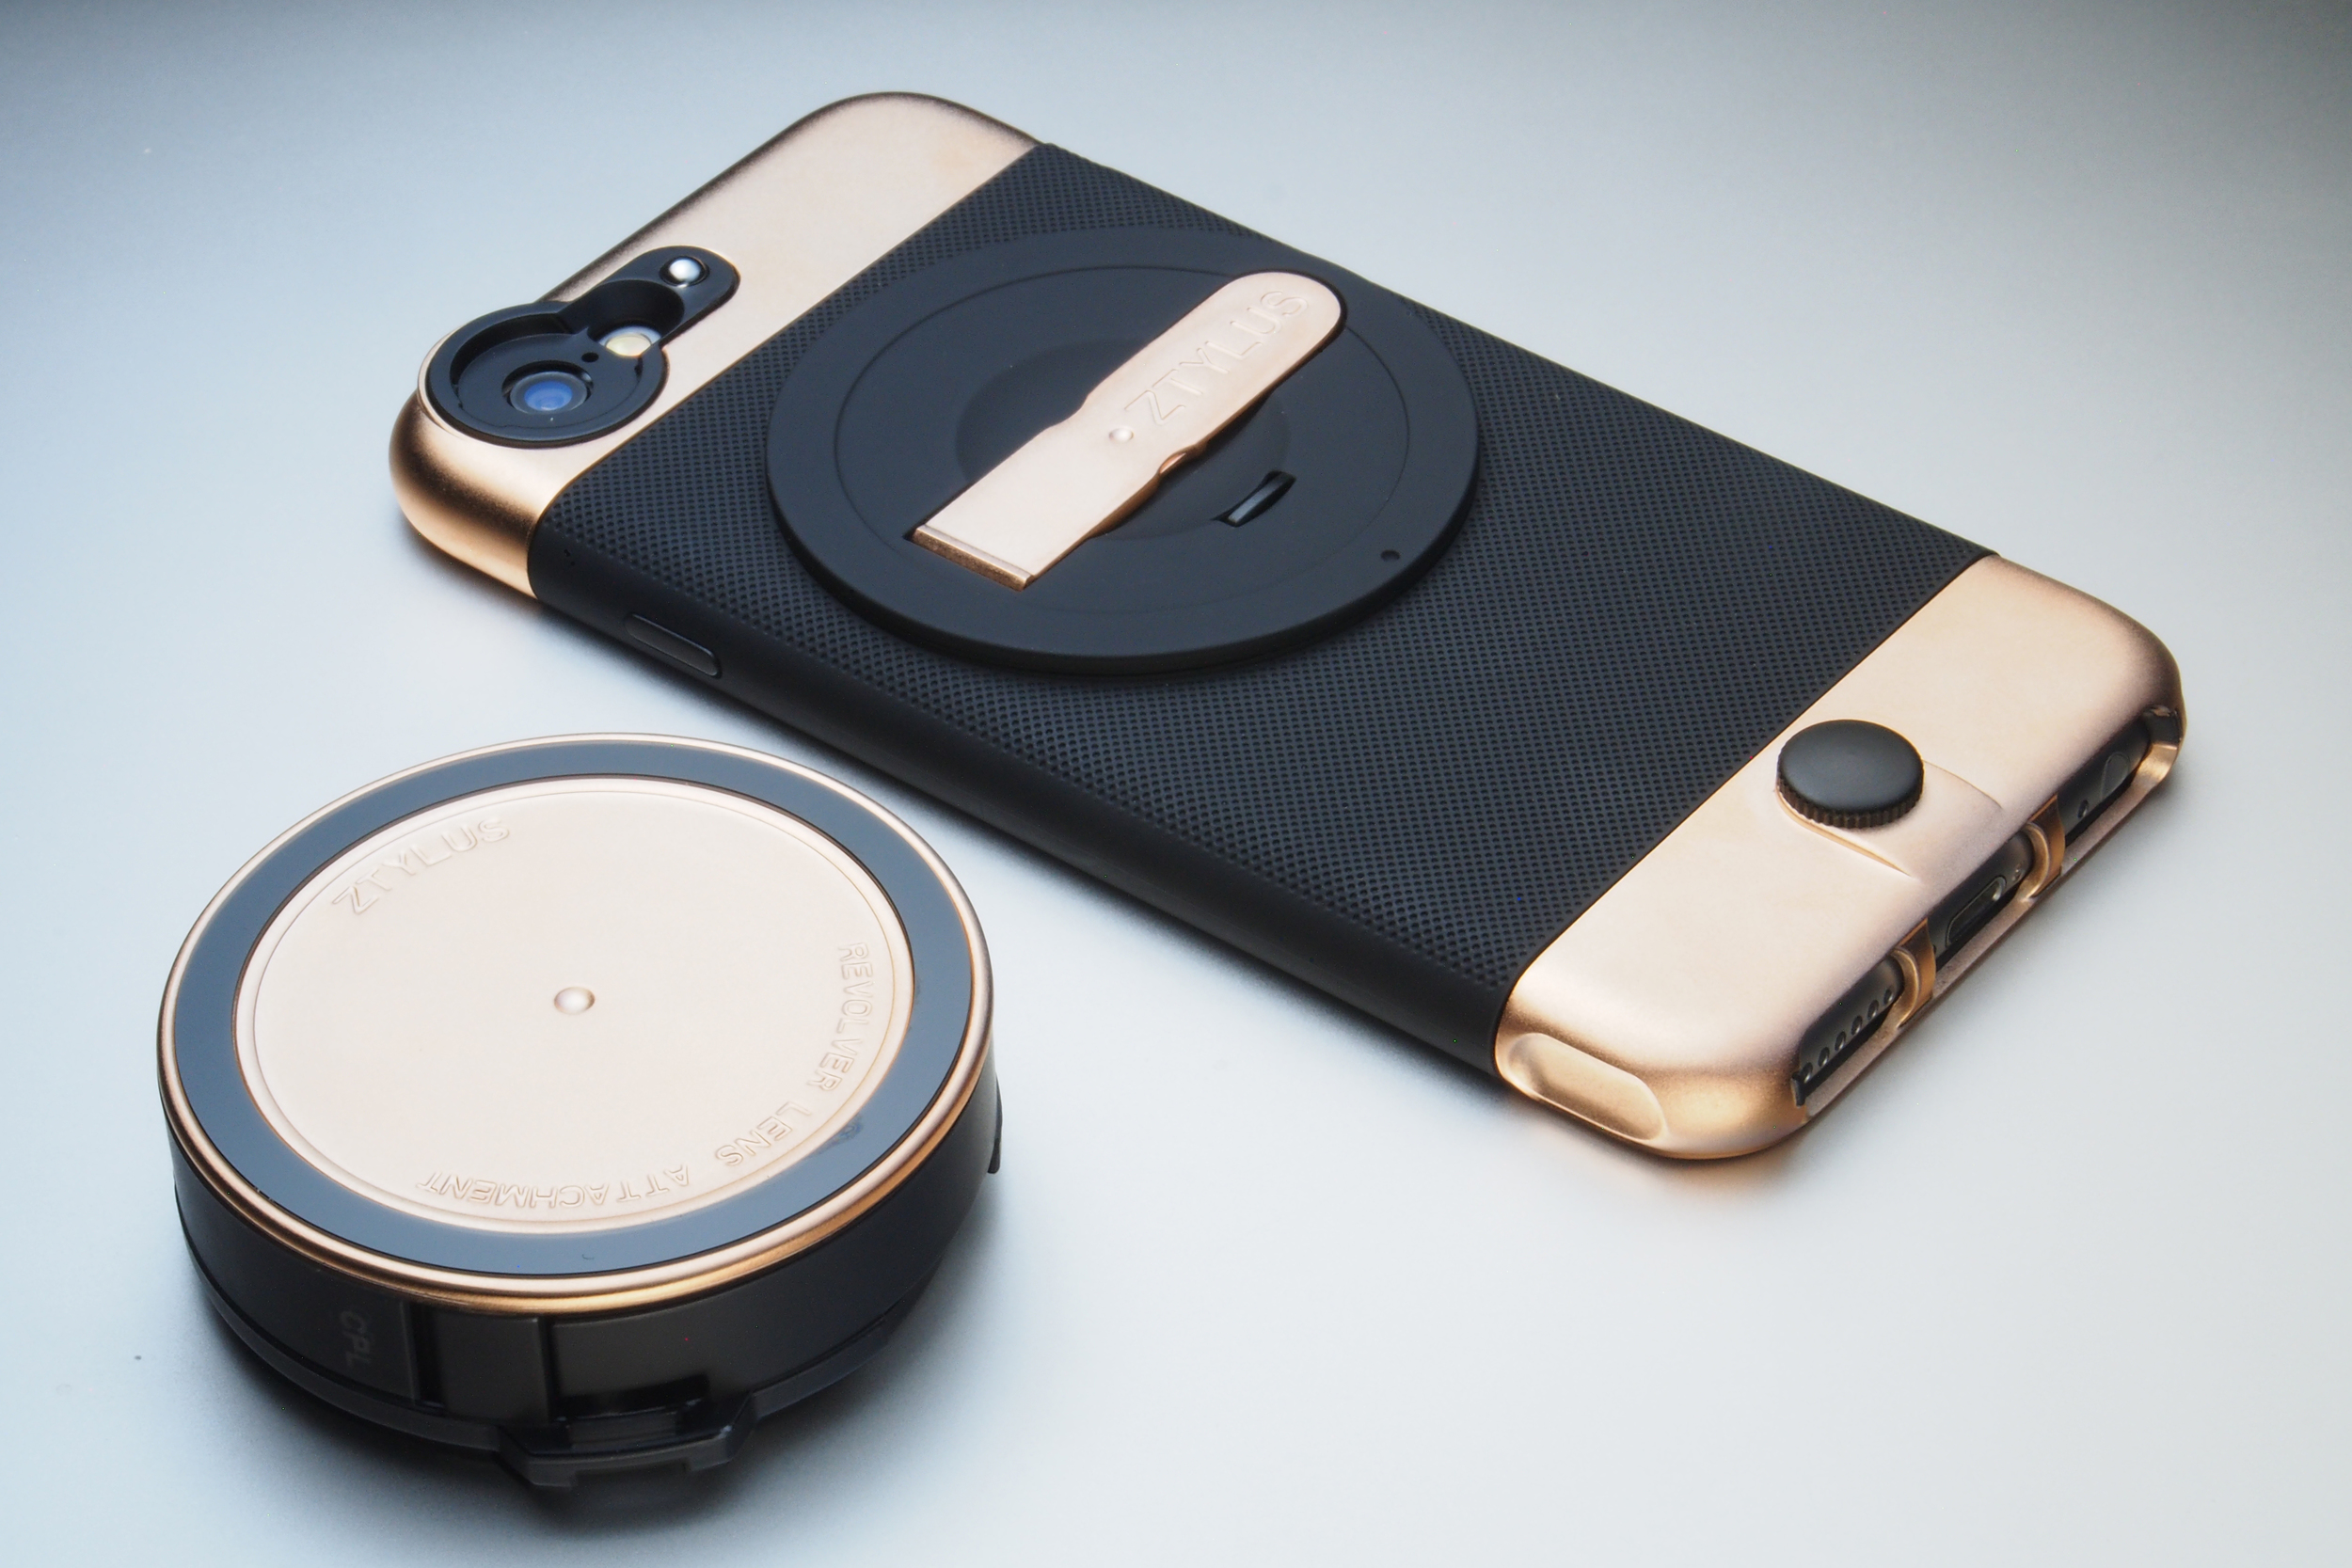 ZTYLUS Rose Gold Case & Lens Separate.JPG